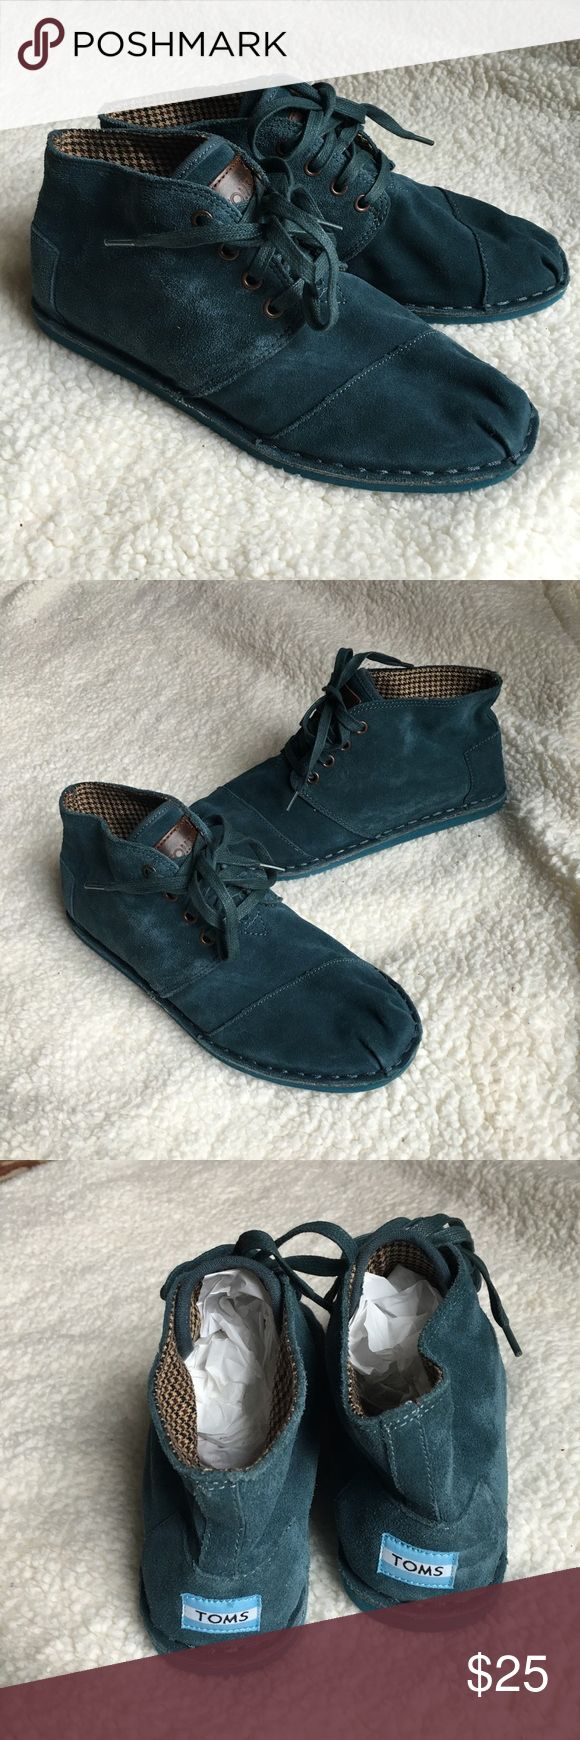 Toms High Tops Selling a size 8.5 Women's Toms desert boots. These are in great condition. No rips or holes. No funny smells. Inside is very clean as well. TOMS Shoes Ankle Boots & Booties